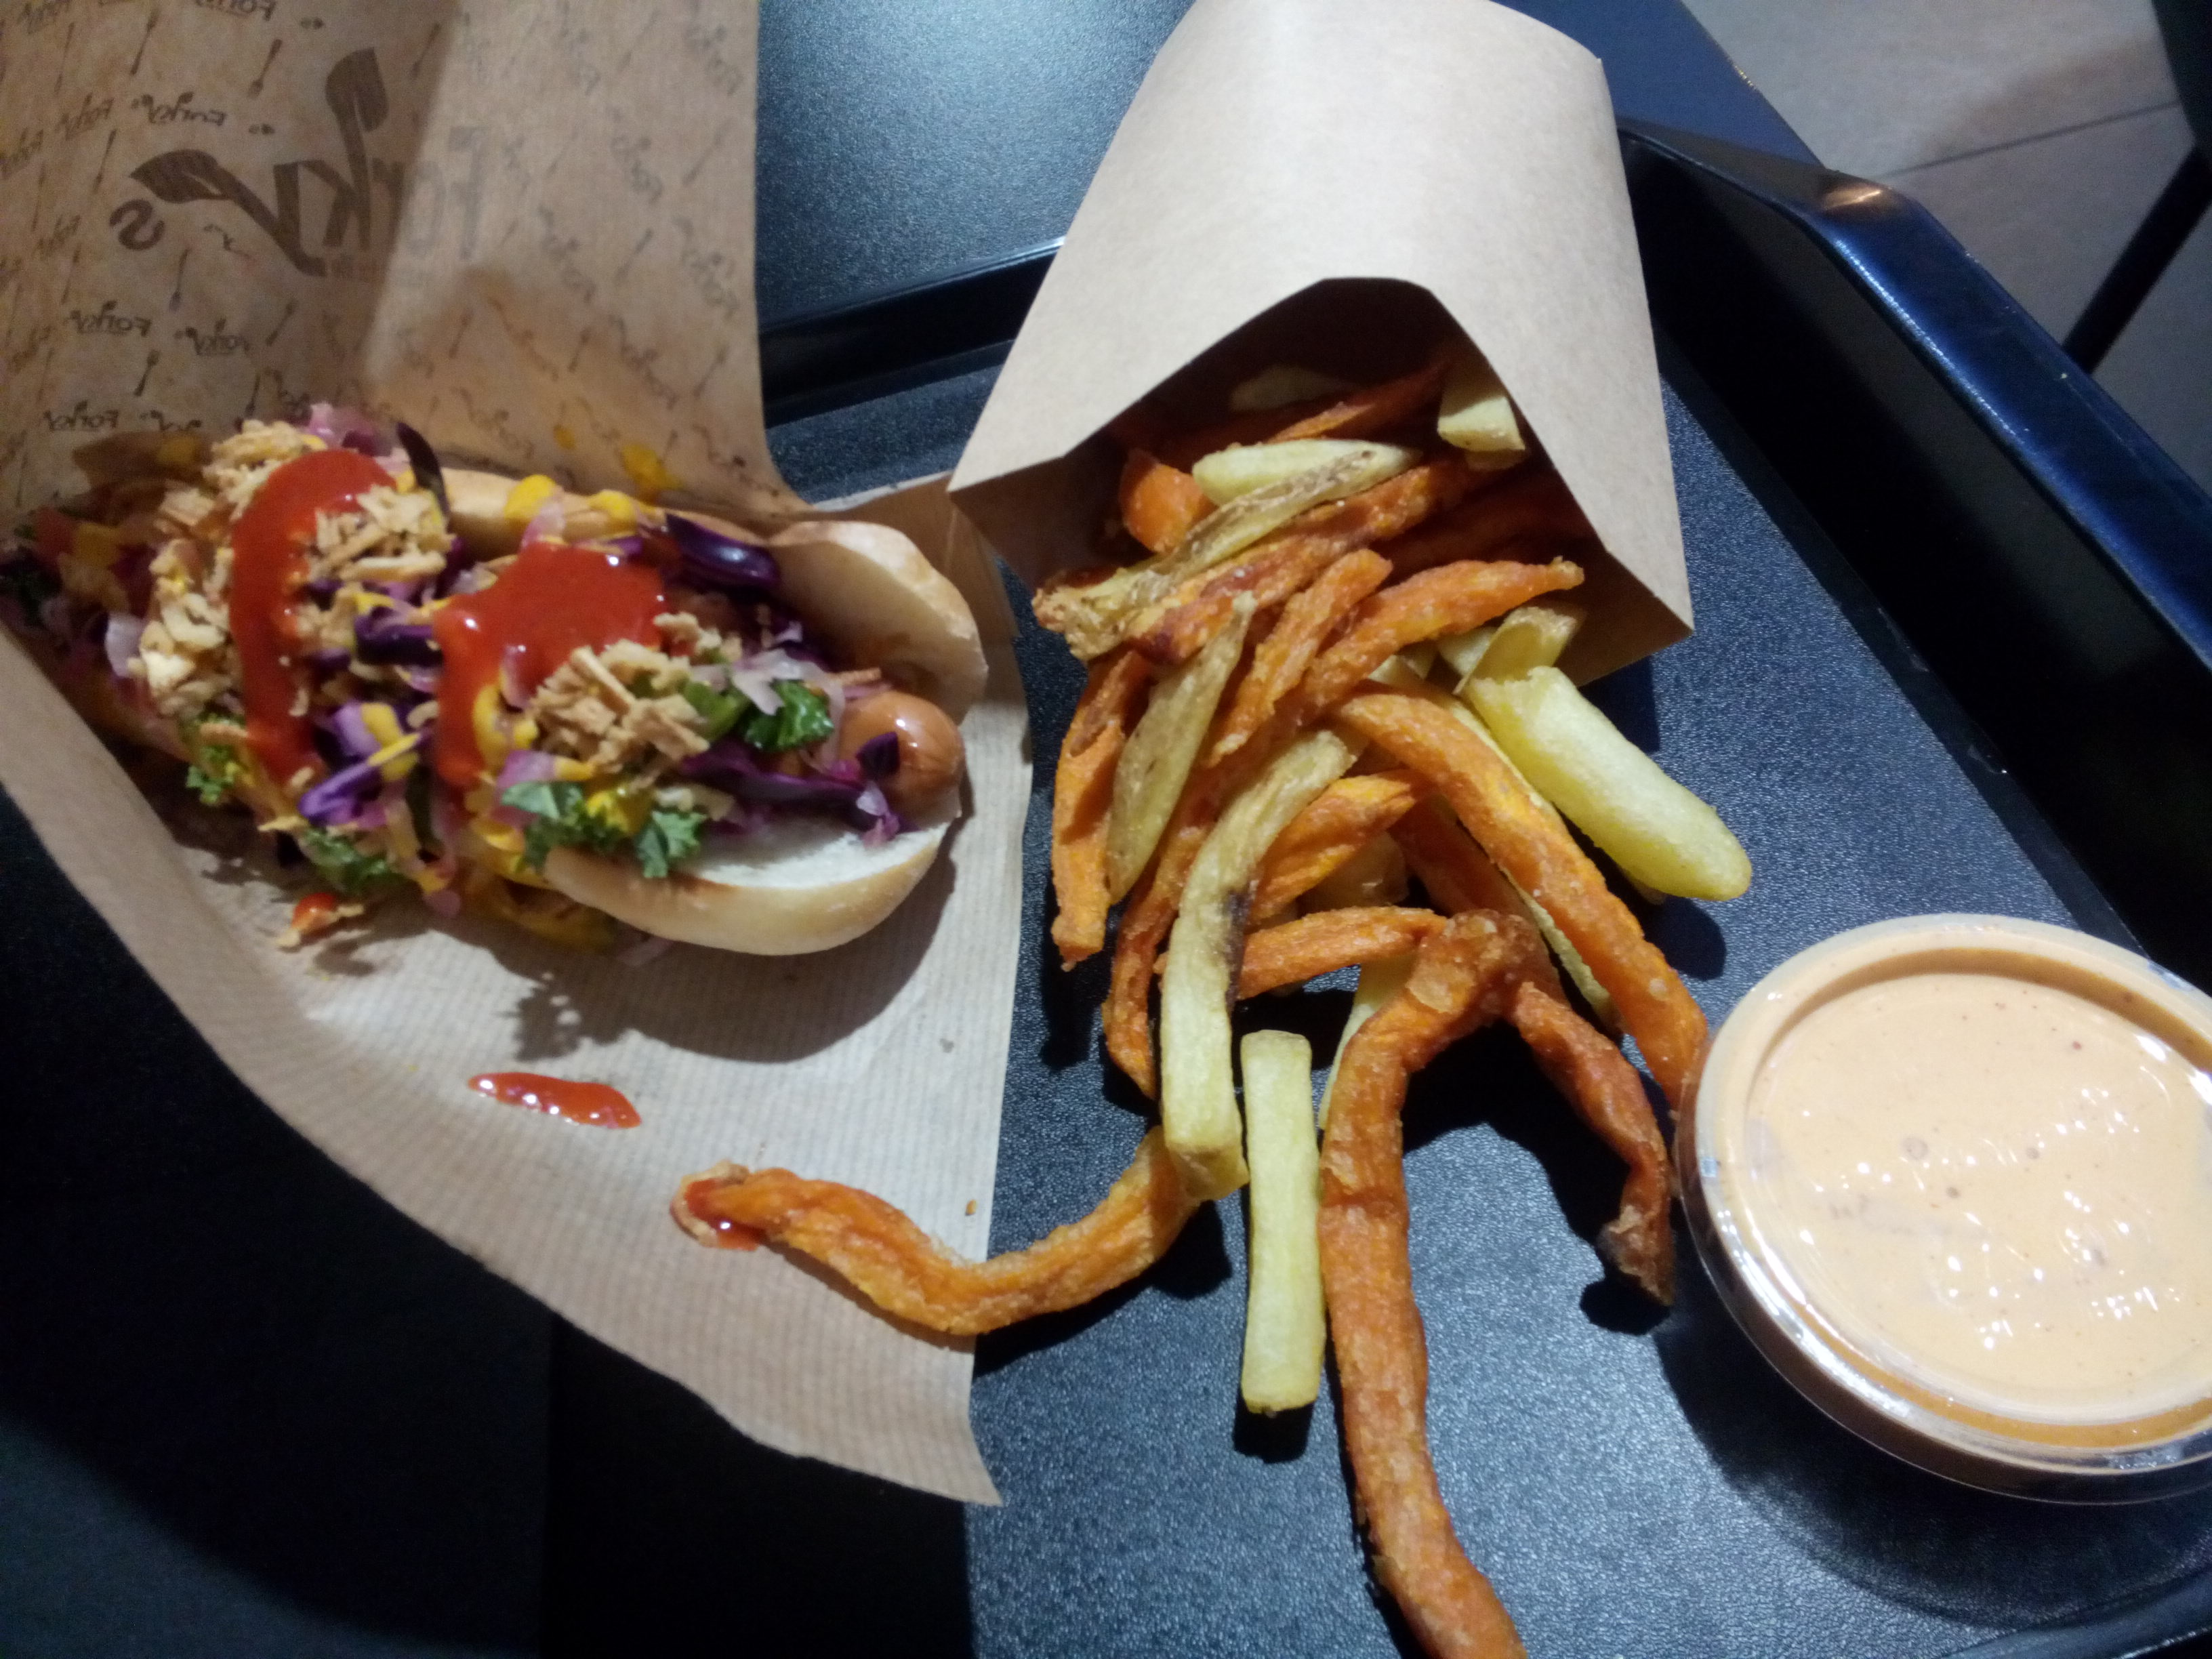 A black tray; a hotdog smothered in toppings and sauce on the left and mixed orange and yellow fries in a cardboard box on the right